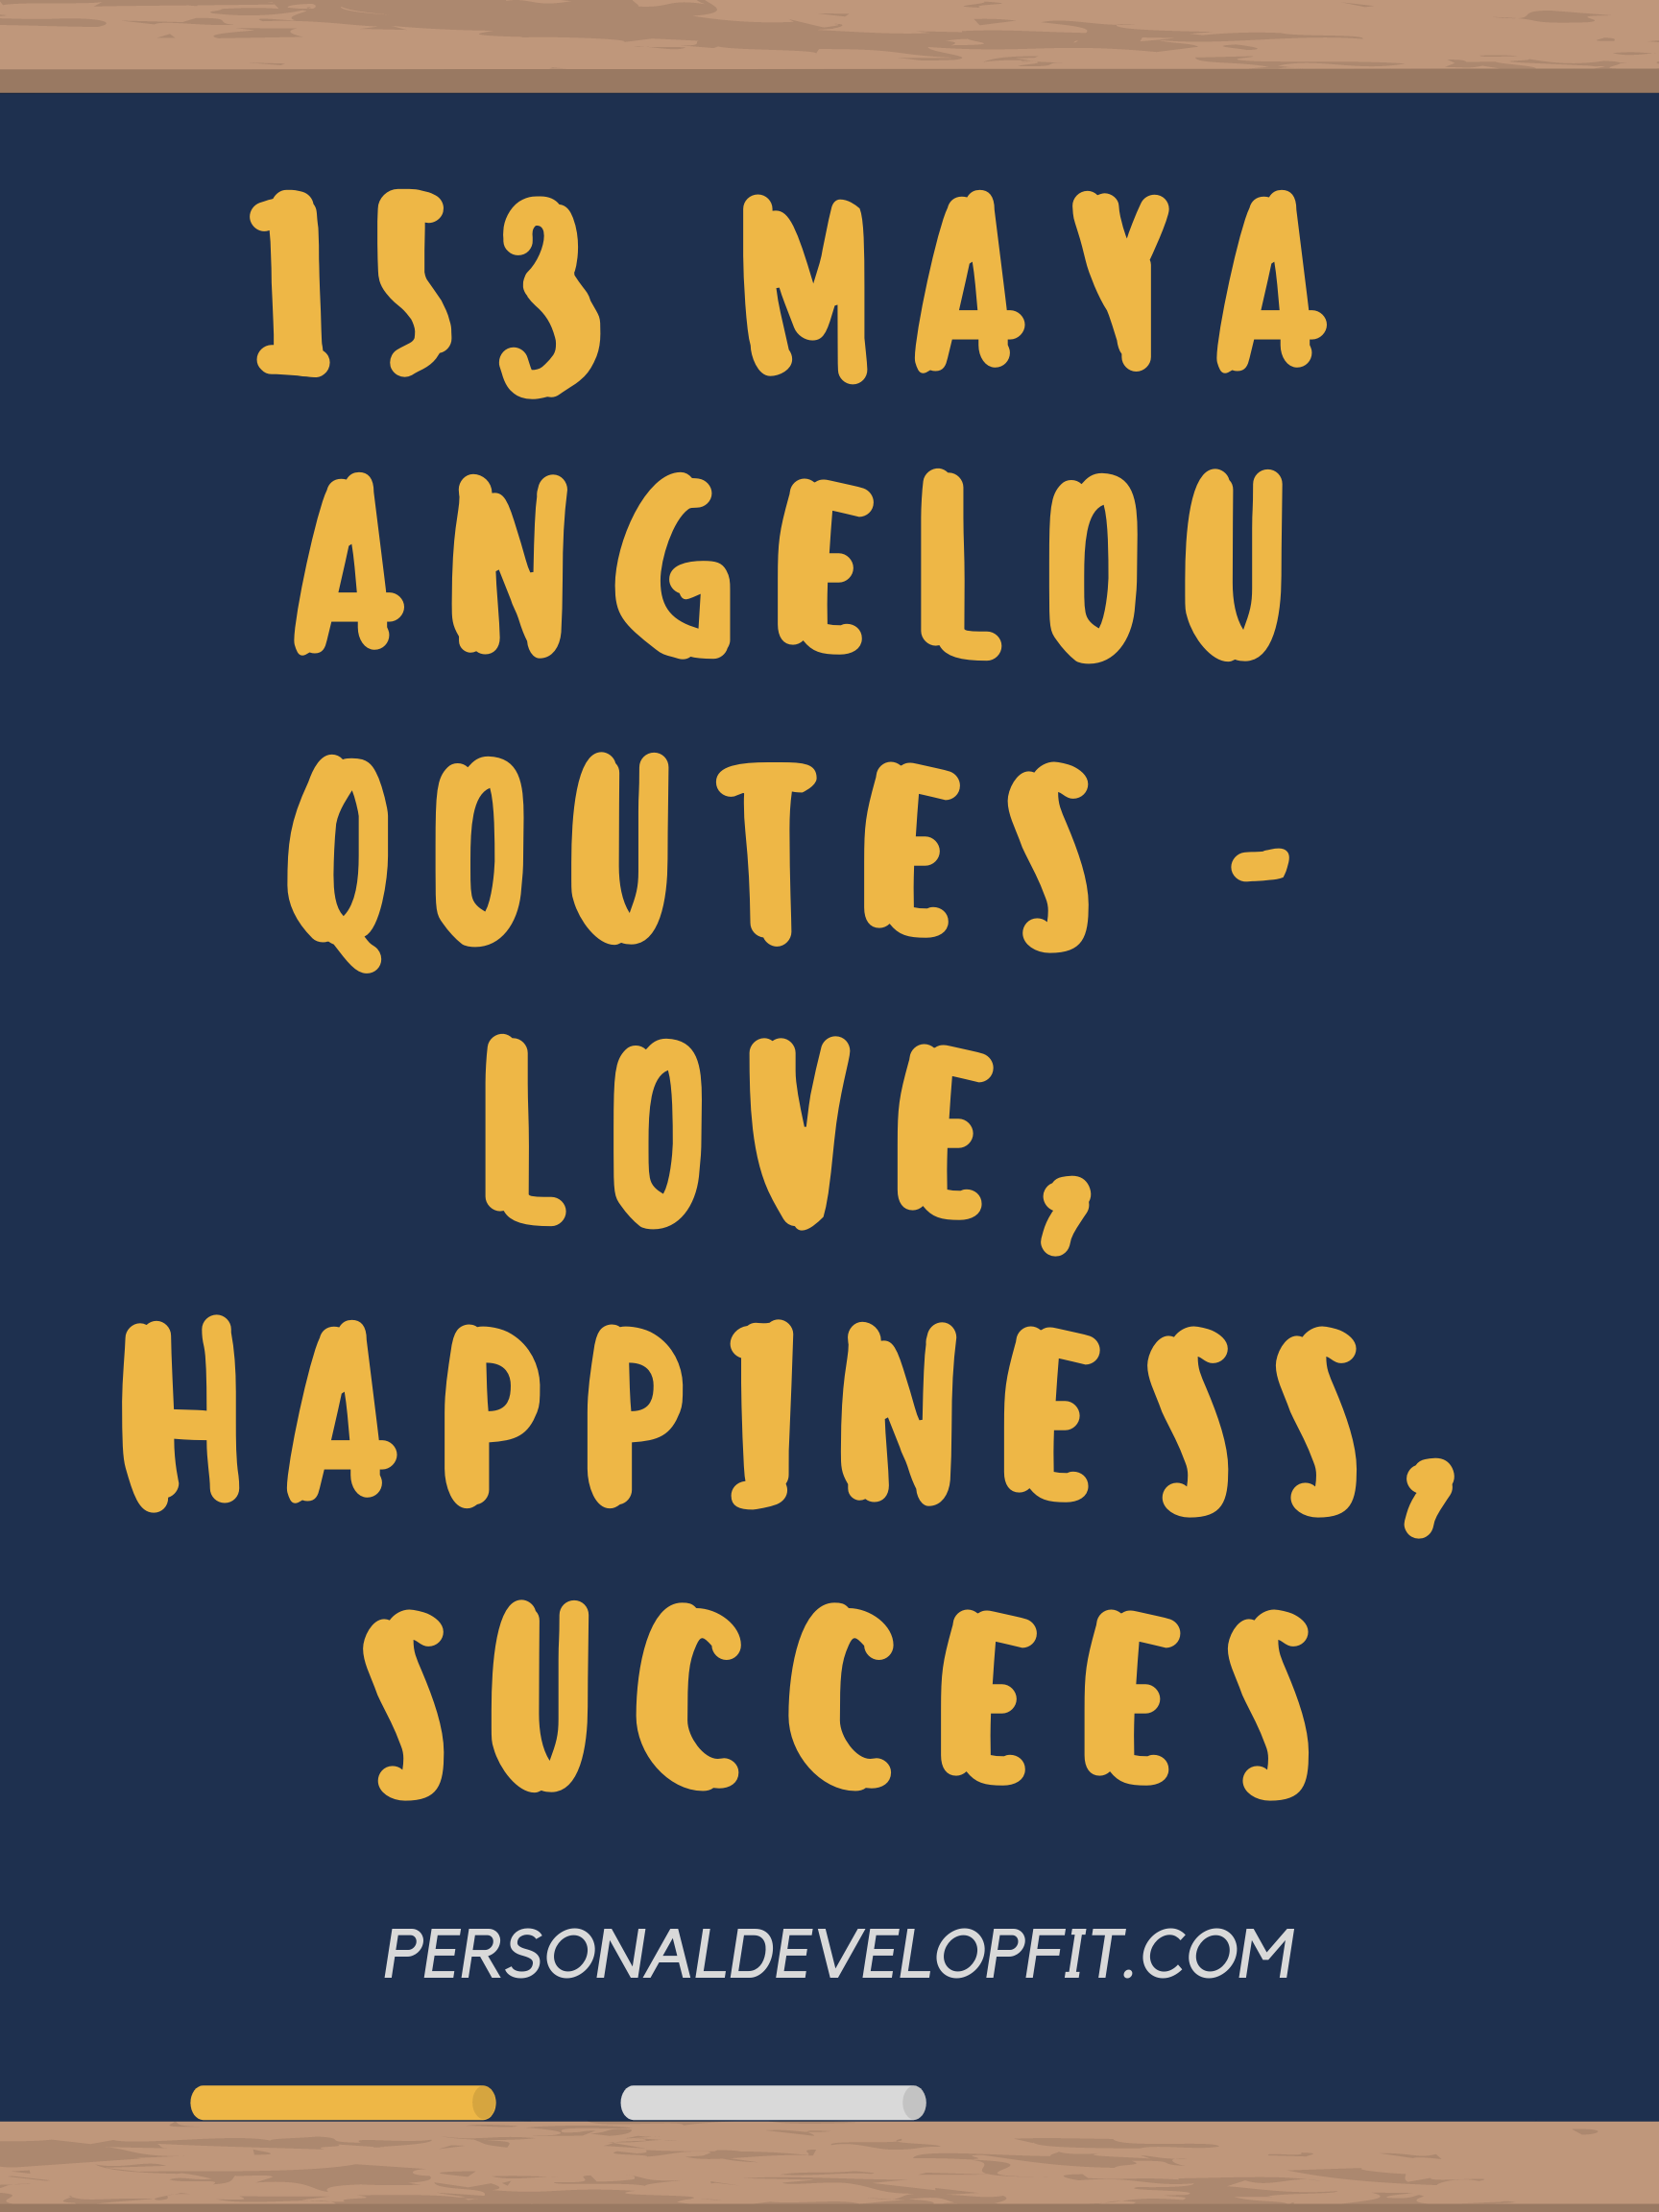 153 Maya Angelou Quotes On Love Happiness Family Success